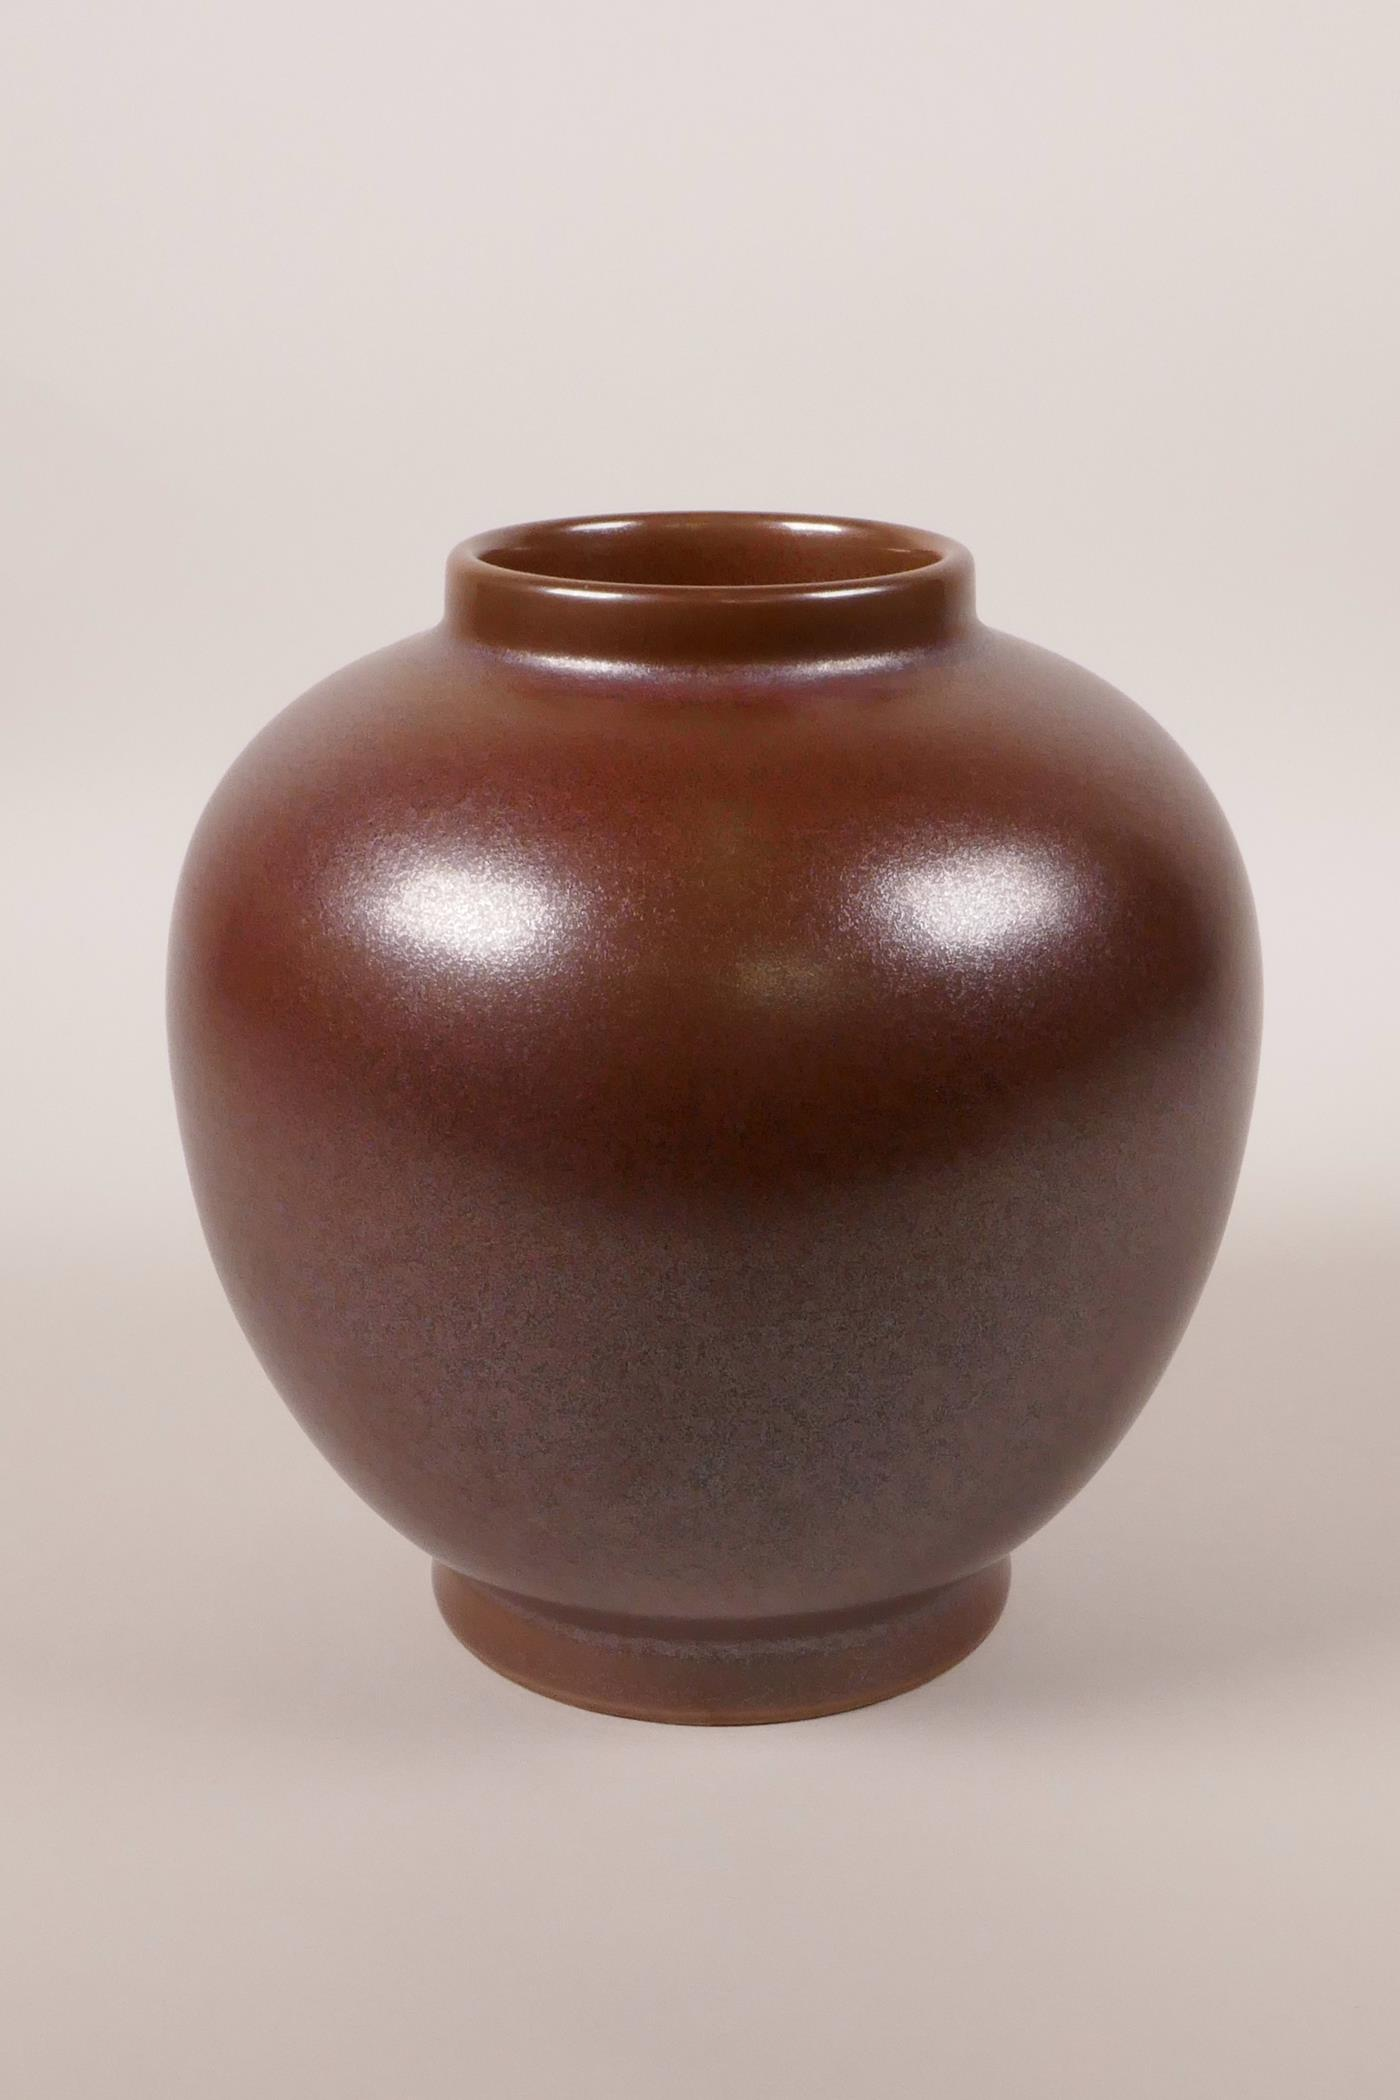 "Lot 18 - A Chinese iridescent copper glazed porcelain jar, 6 character mark to base, 6"" high"